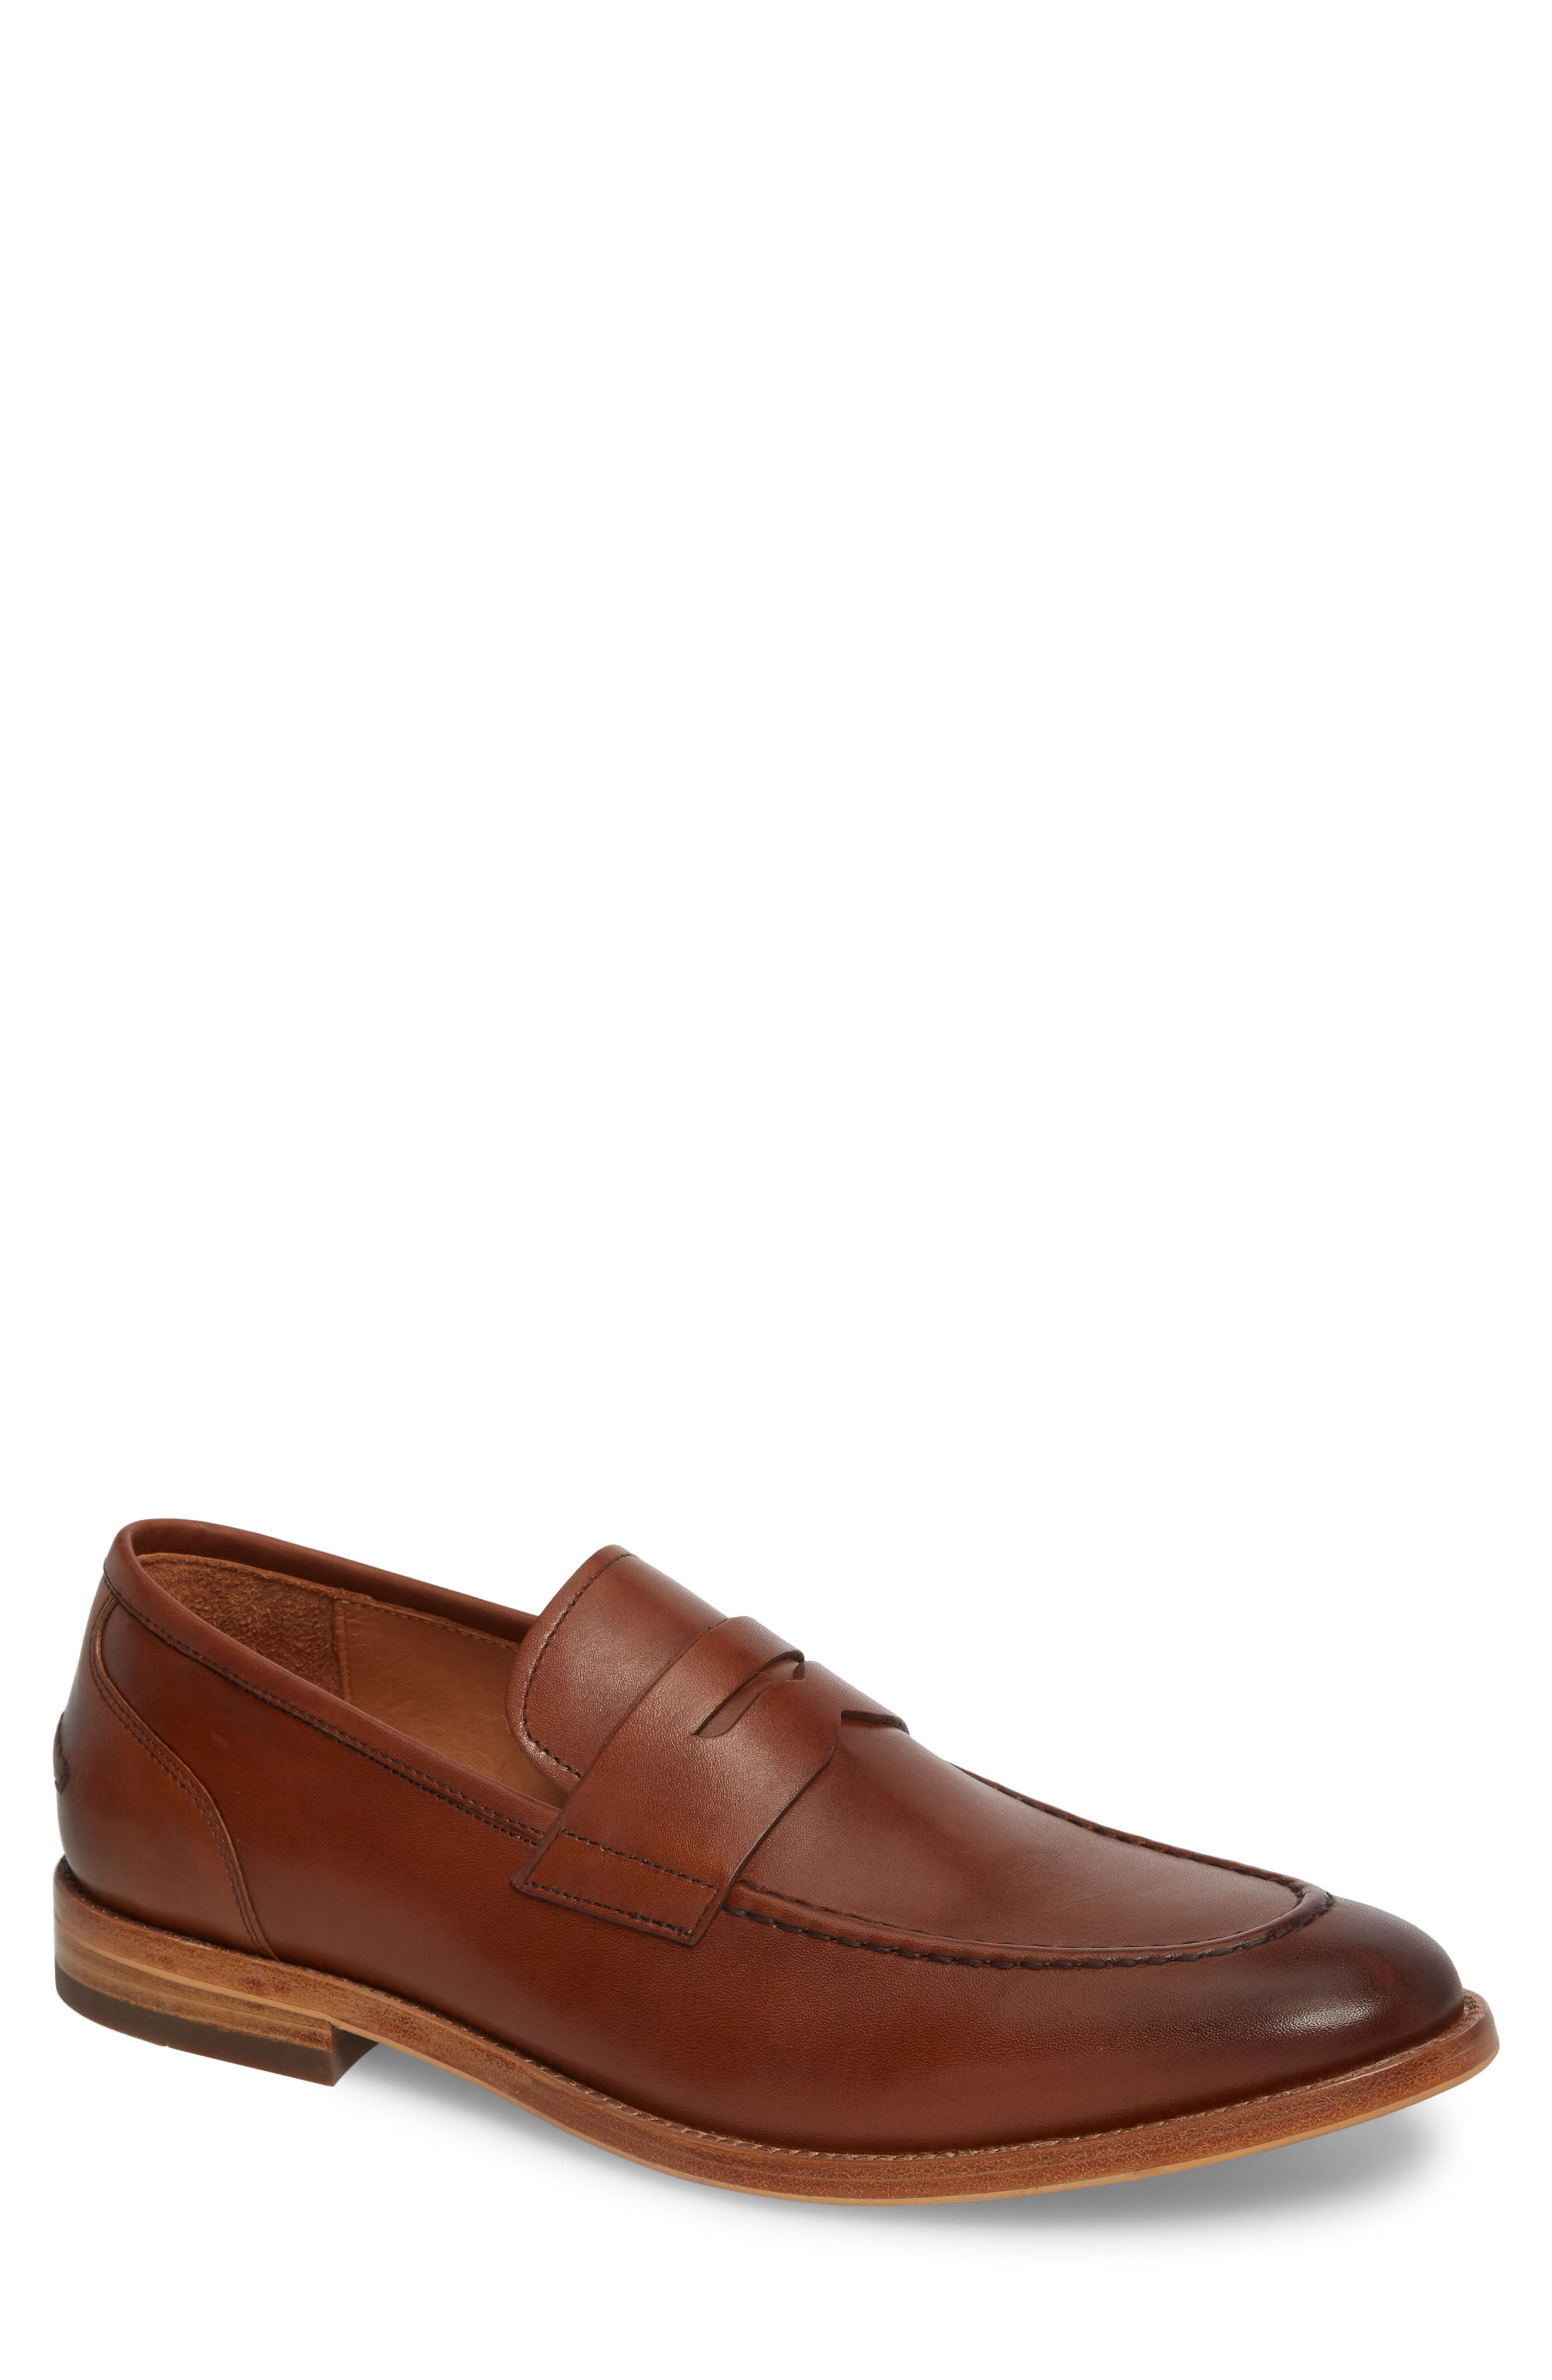 Lucas Loafer,                             Main thumbnail 1, color,                             210